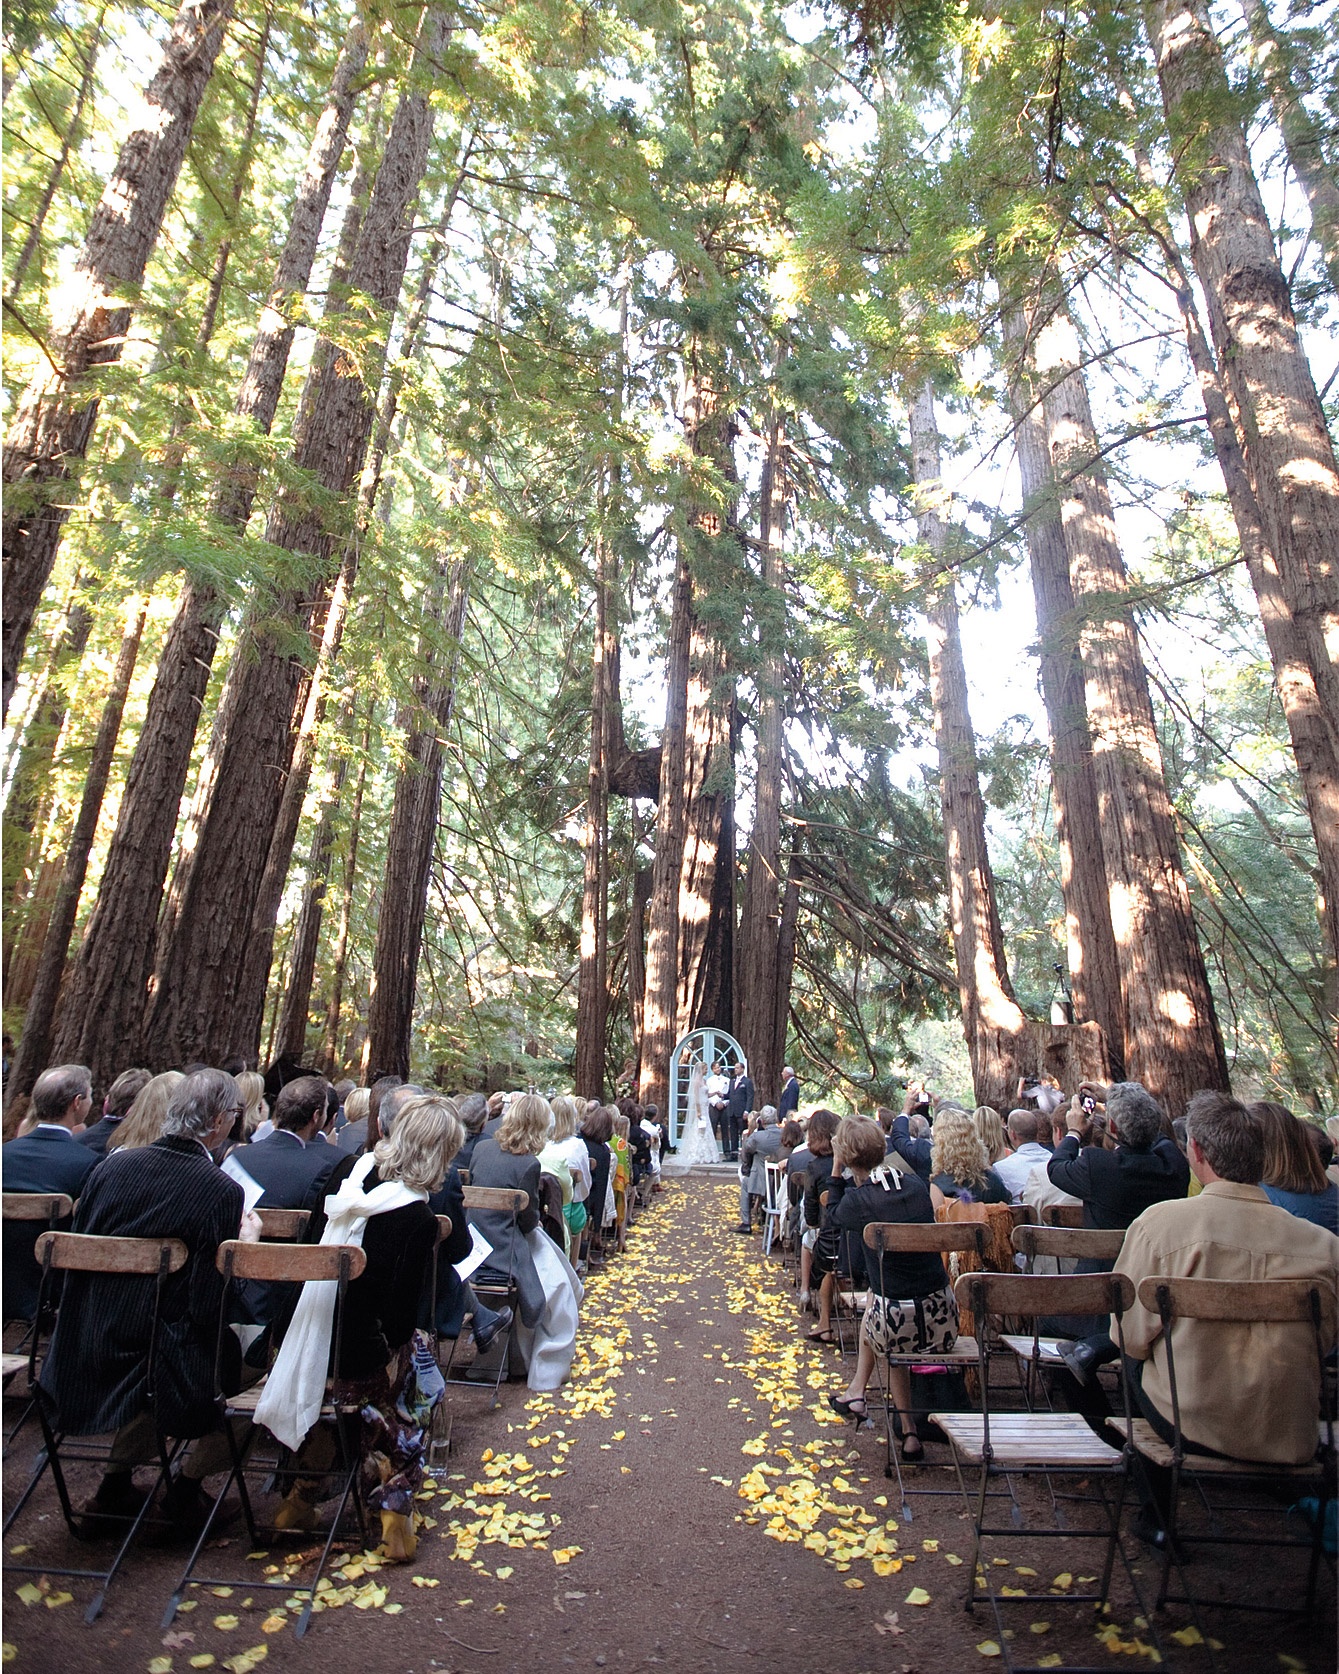 The Tree-lined Ceremony